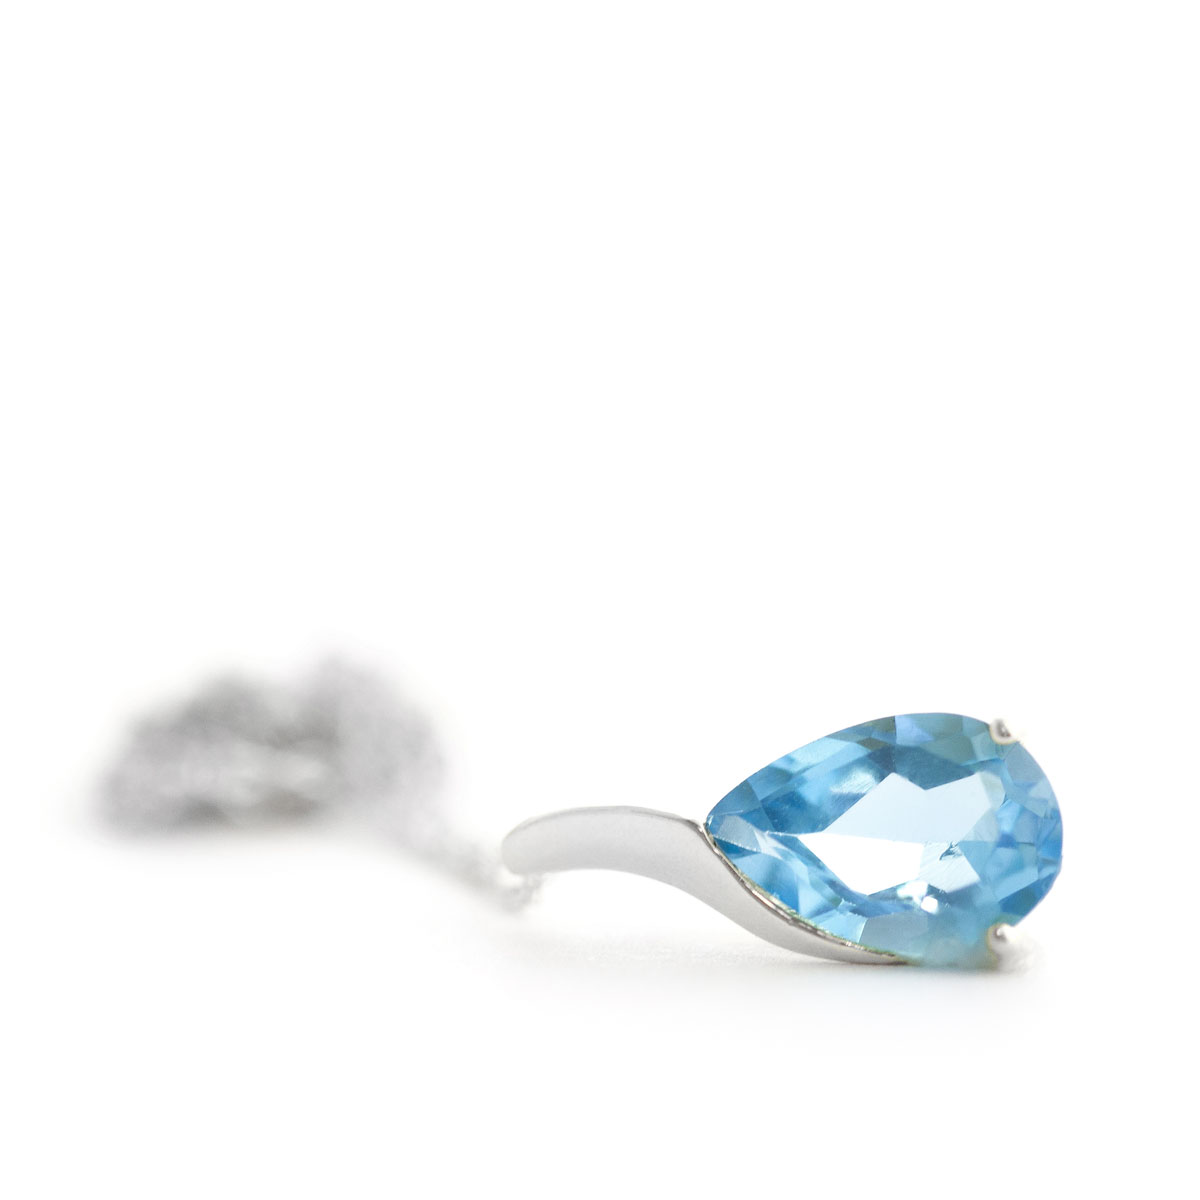 Blue Topaz Tuscany Pendant Necklace 4.7 ct in 9ct White Gold